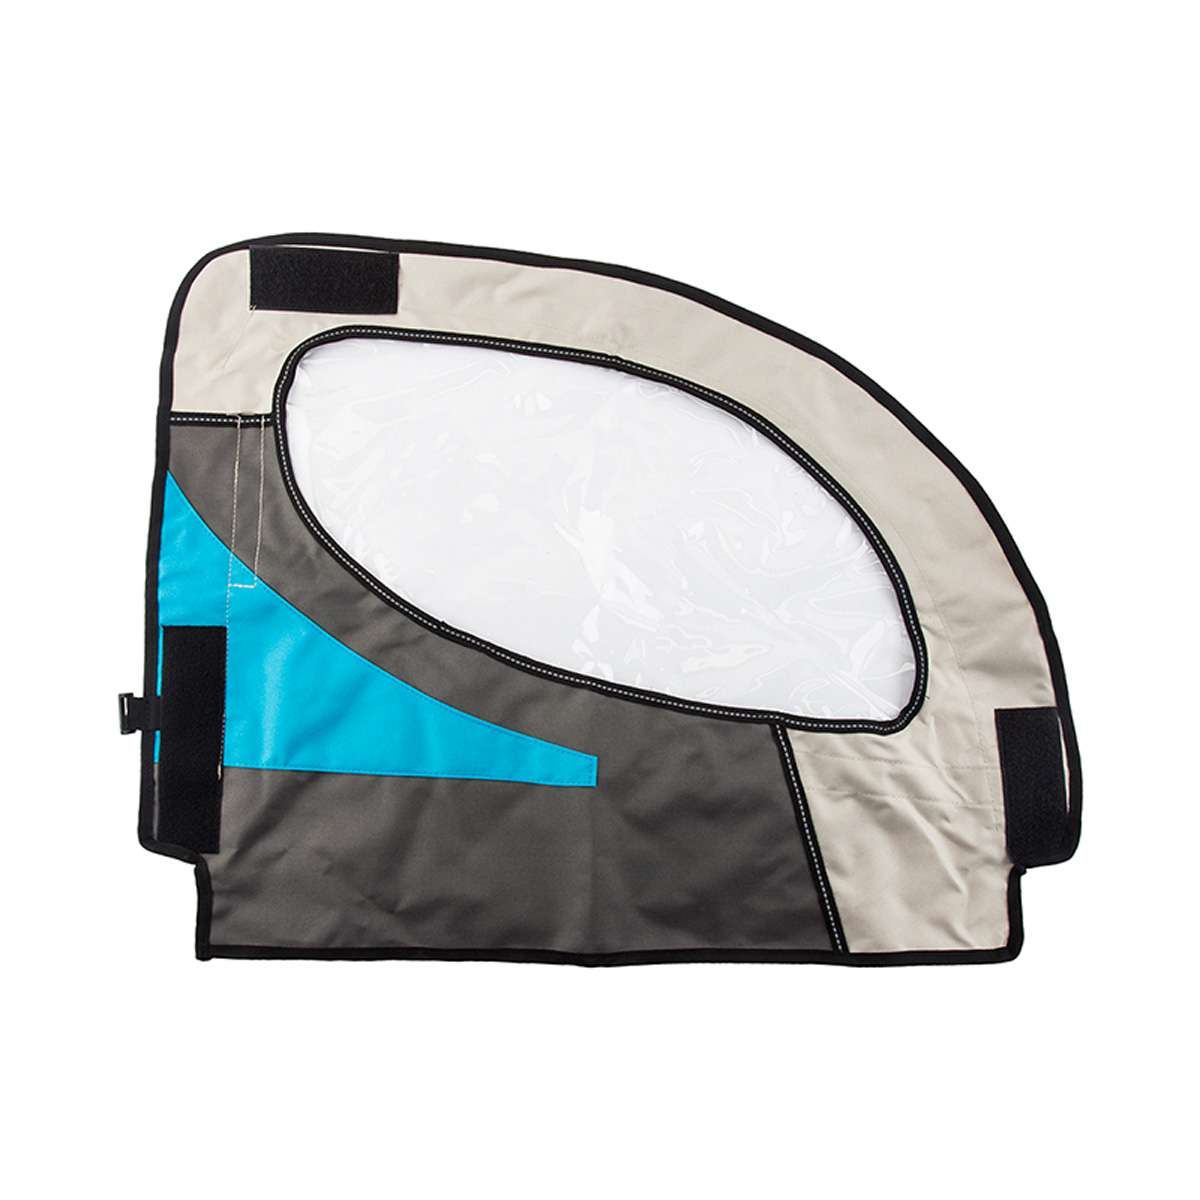 Sunlite Trailer Replacement Right Panel - f/912629/912631/912632 - 912636